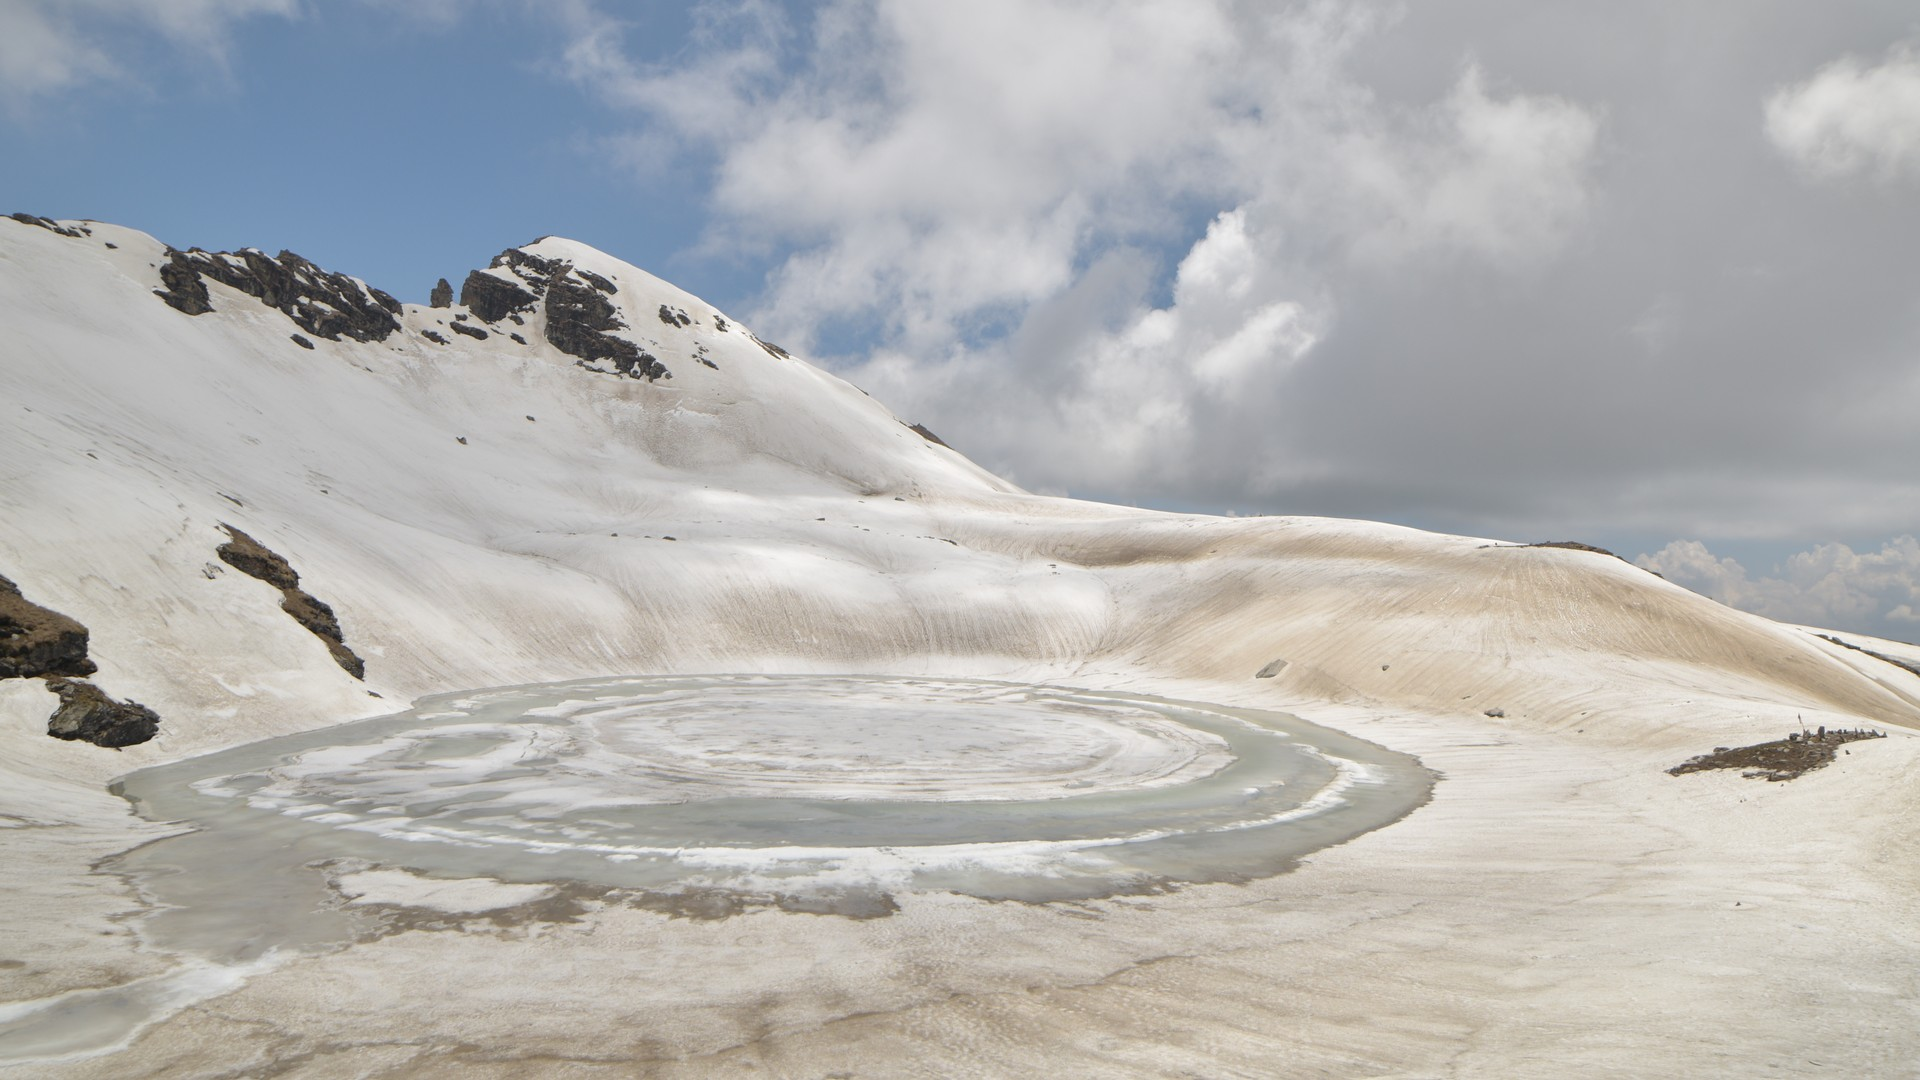 Bhrigu Lake Trek in Manali - Bhrigu Lake or Brighu Lake is a lake located at an elevation of around 4,300 metres (14,100 ft) in Kullu district, Himachal Pradesh, India. It is located to the east of Rohtang Pass and is around 6 kilometres (3.7 mi) from Gulaba village